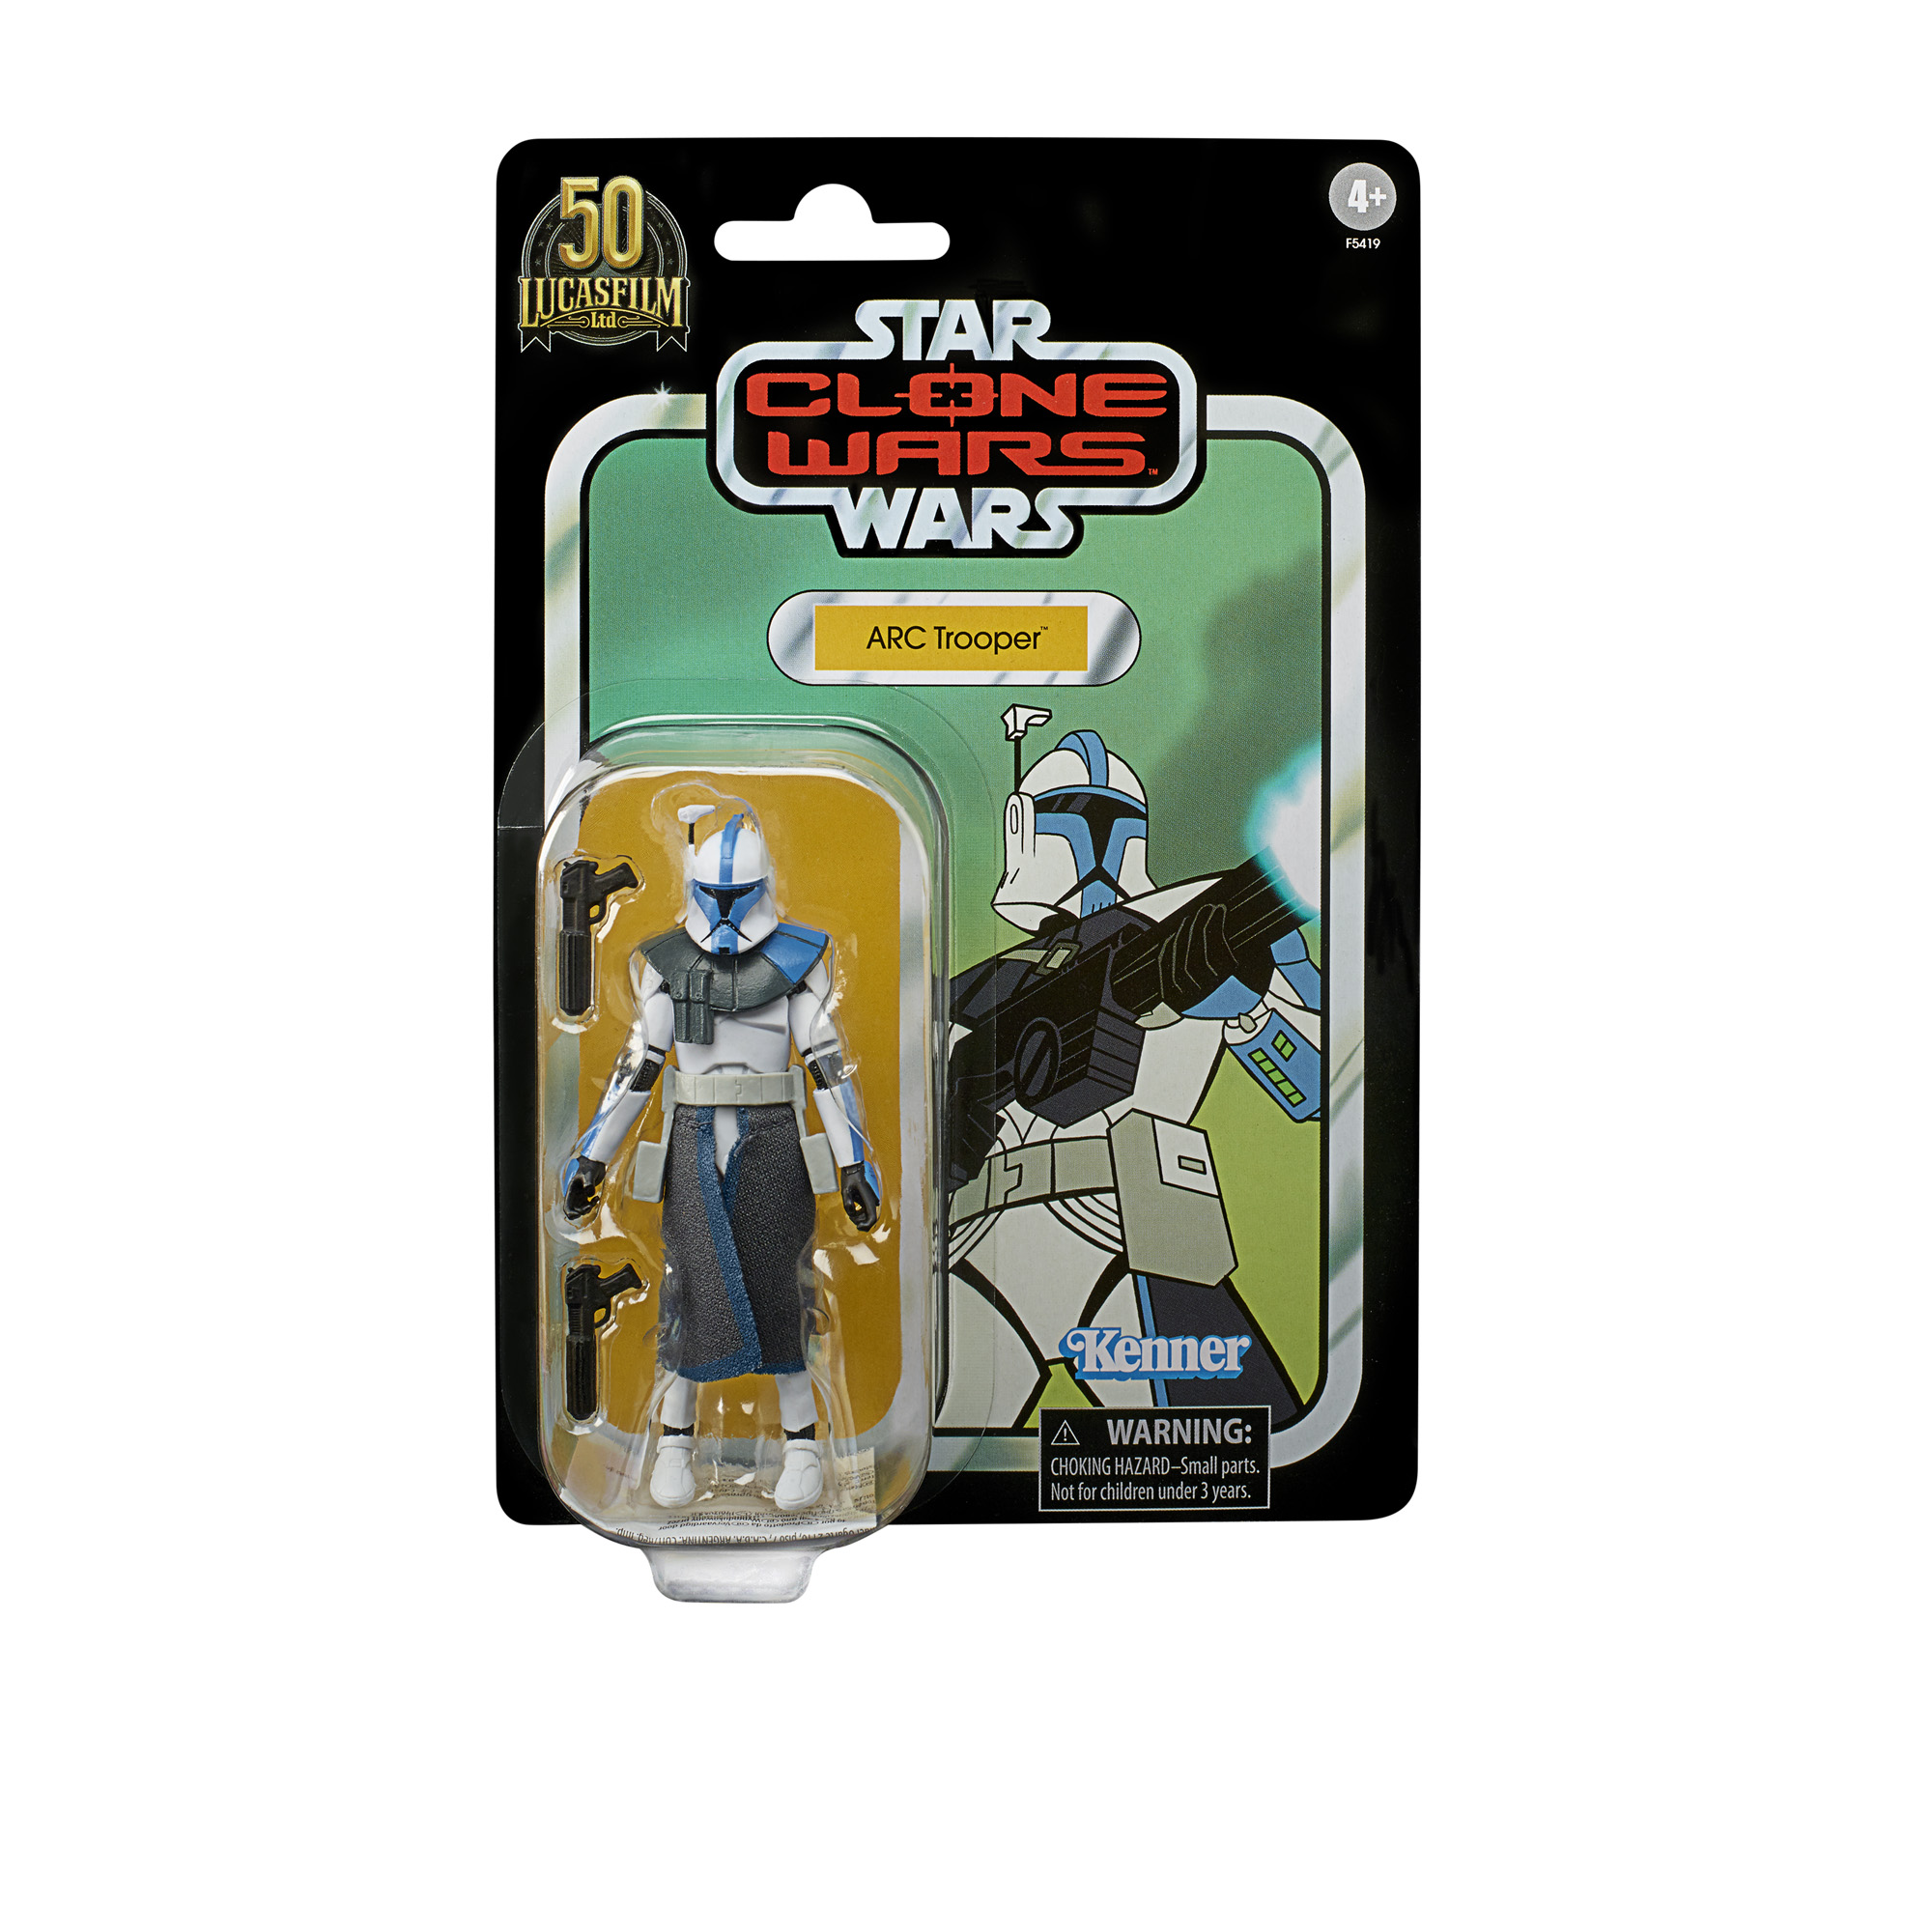 Star Wars The Vintage Collection Star Wars: Clone Wars ARC Trooper 3 3/4-Inch Action Figure画像